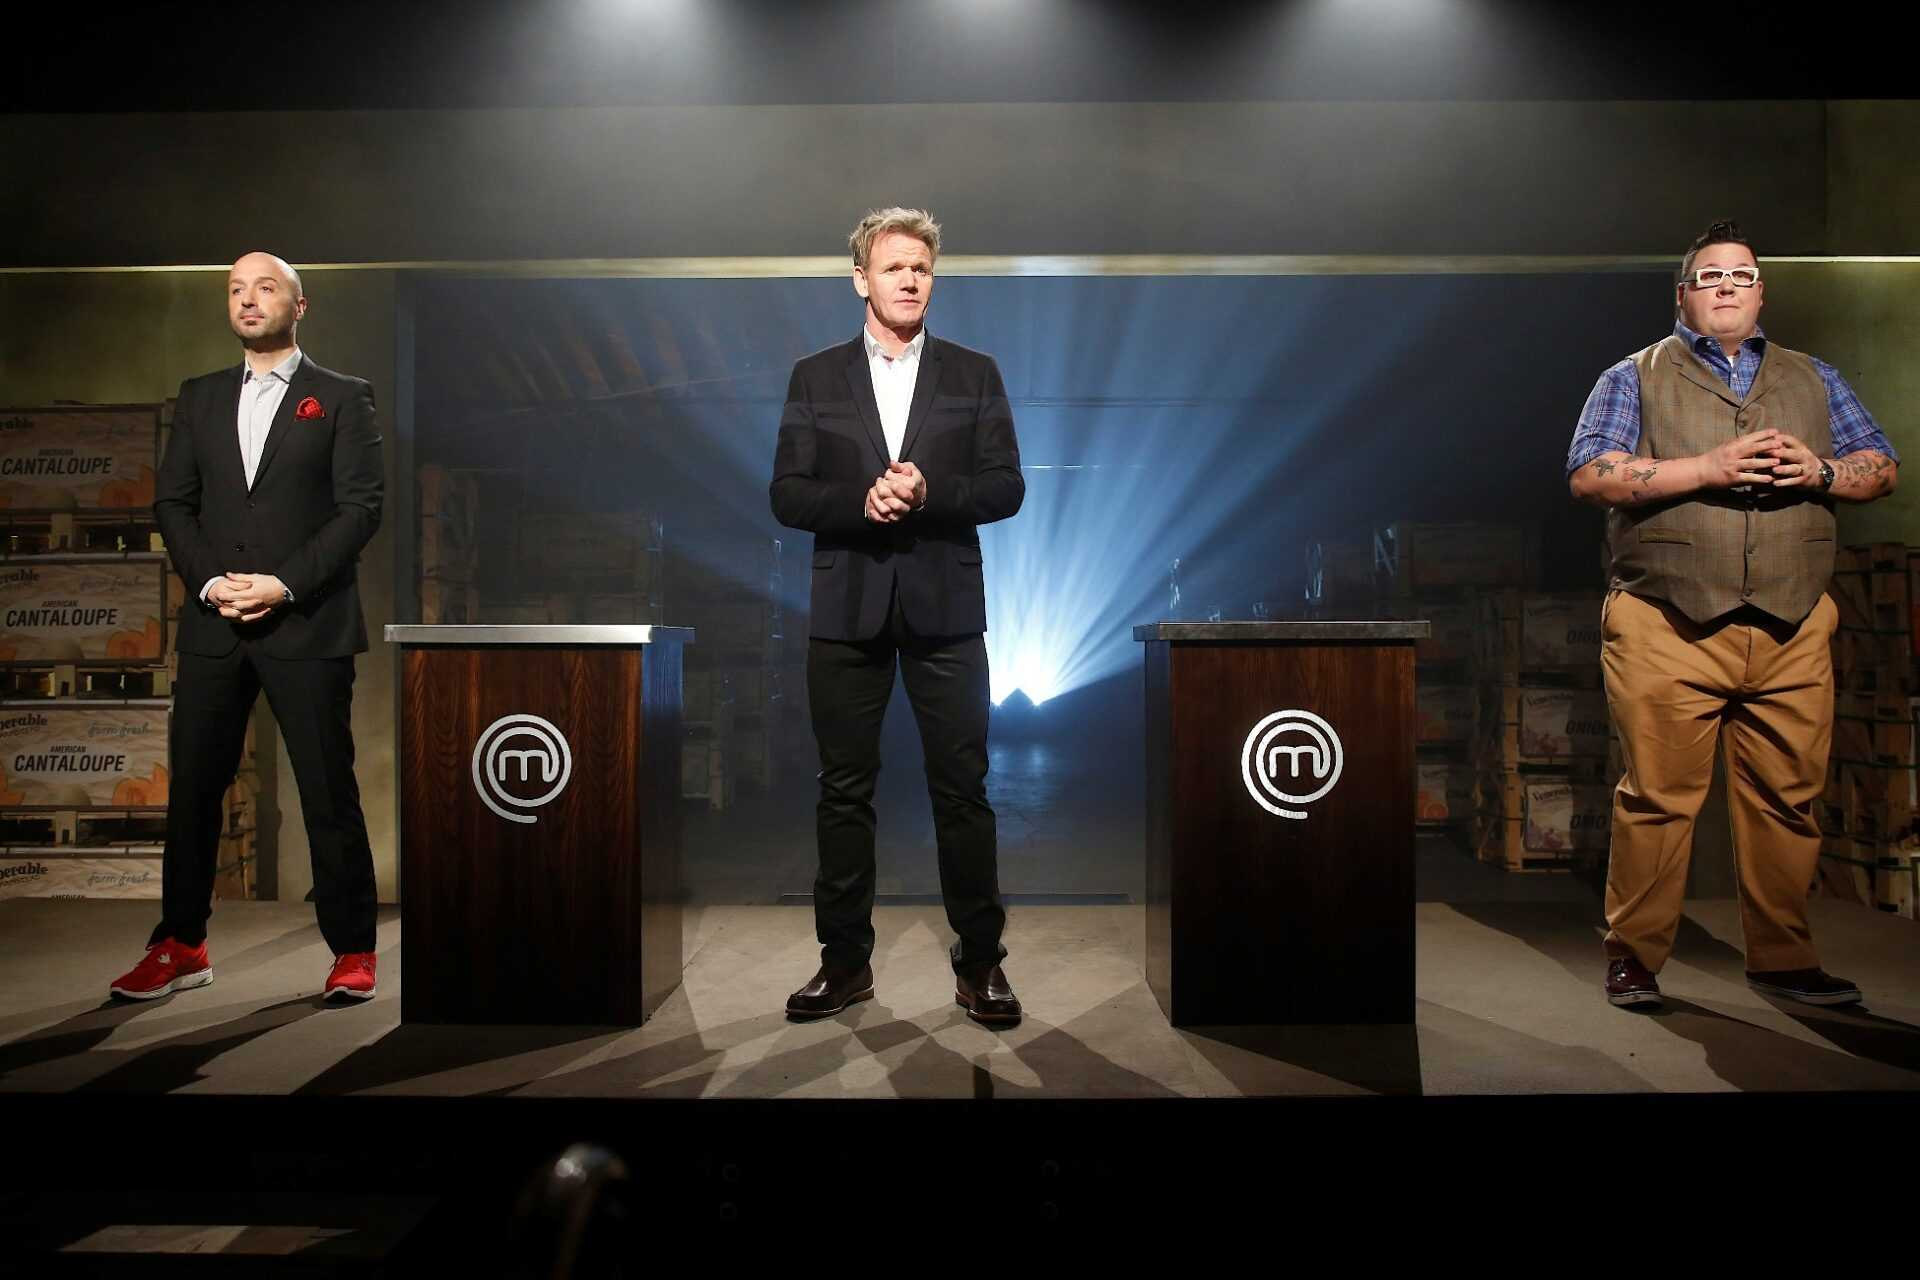 Masterchef USA, la quarta stagione su Cielo in prima tv assoluta in chiaro | Digitale terrestre: Dtti.it